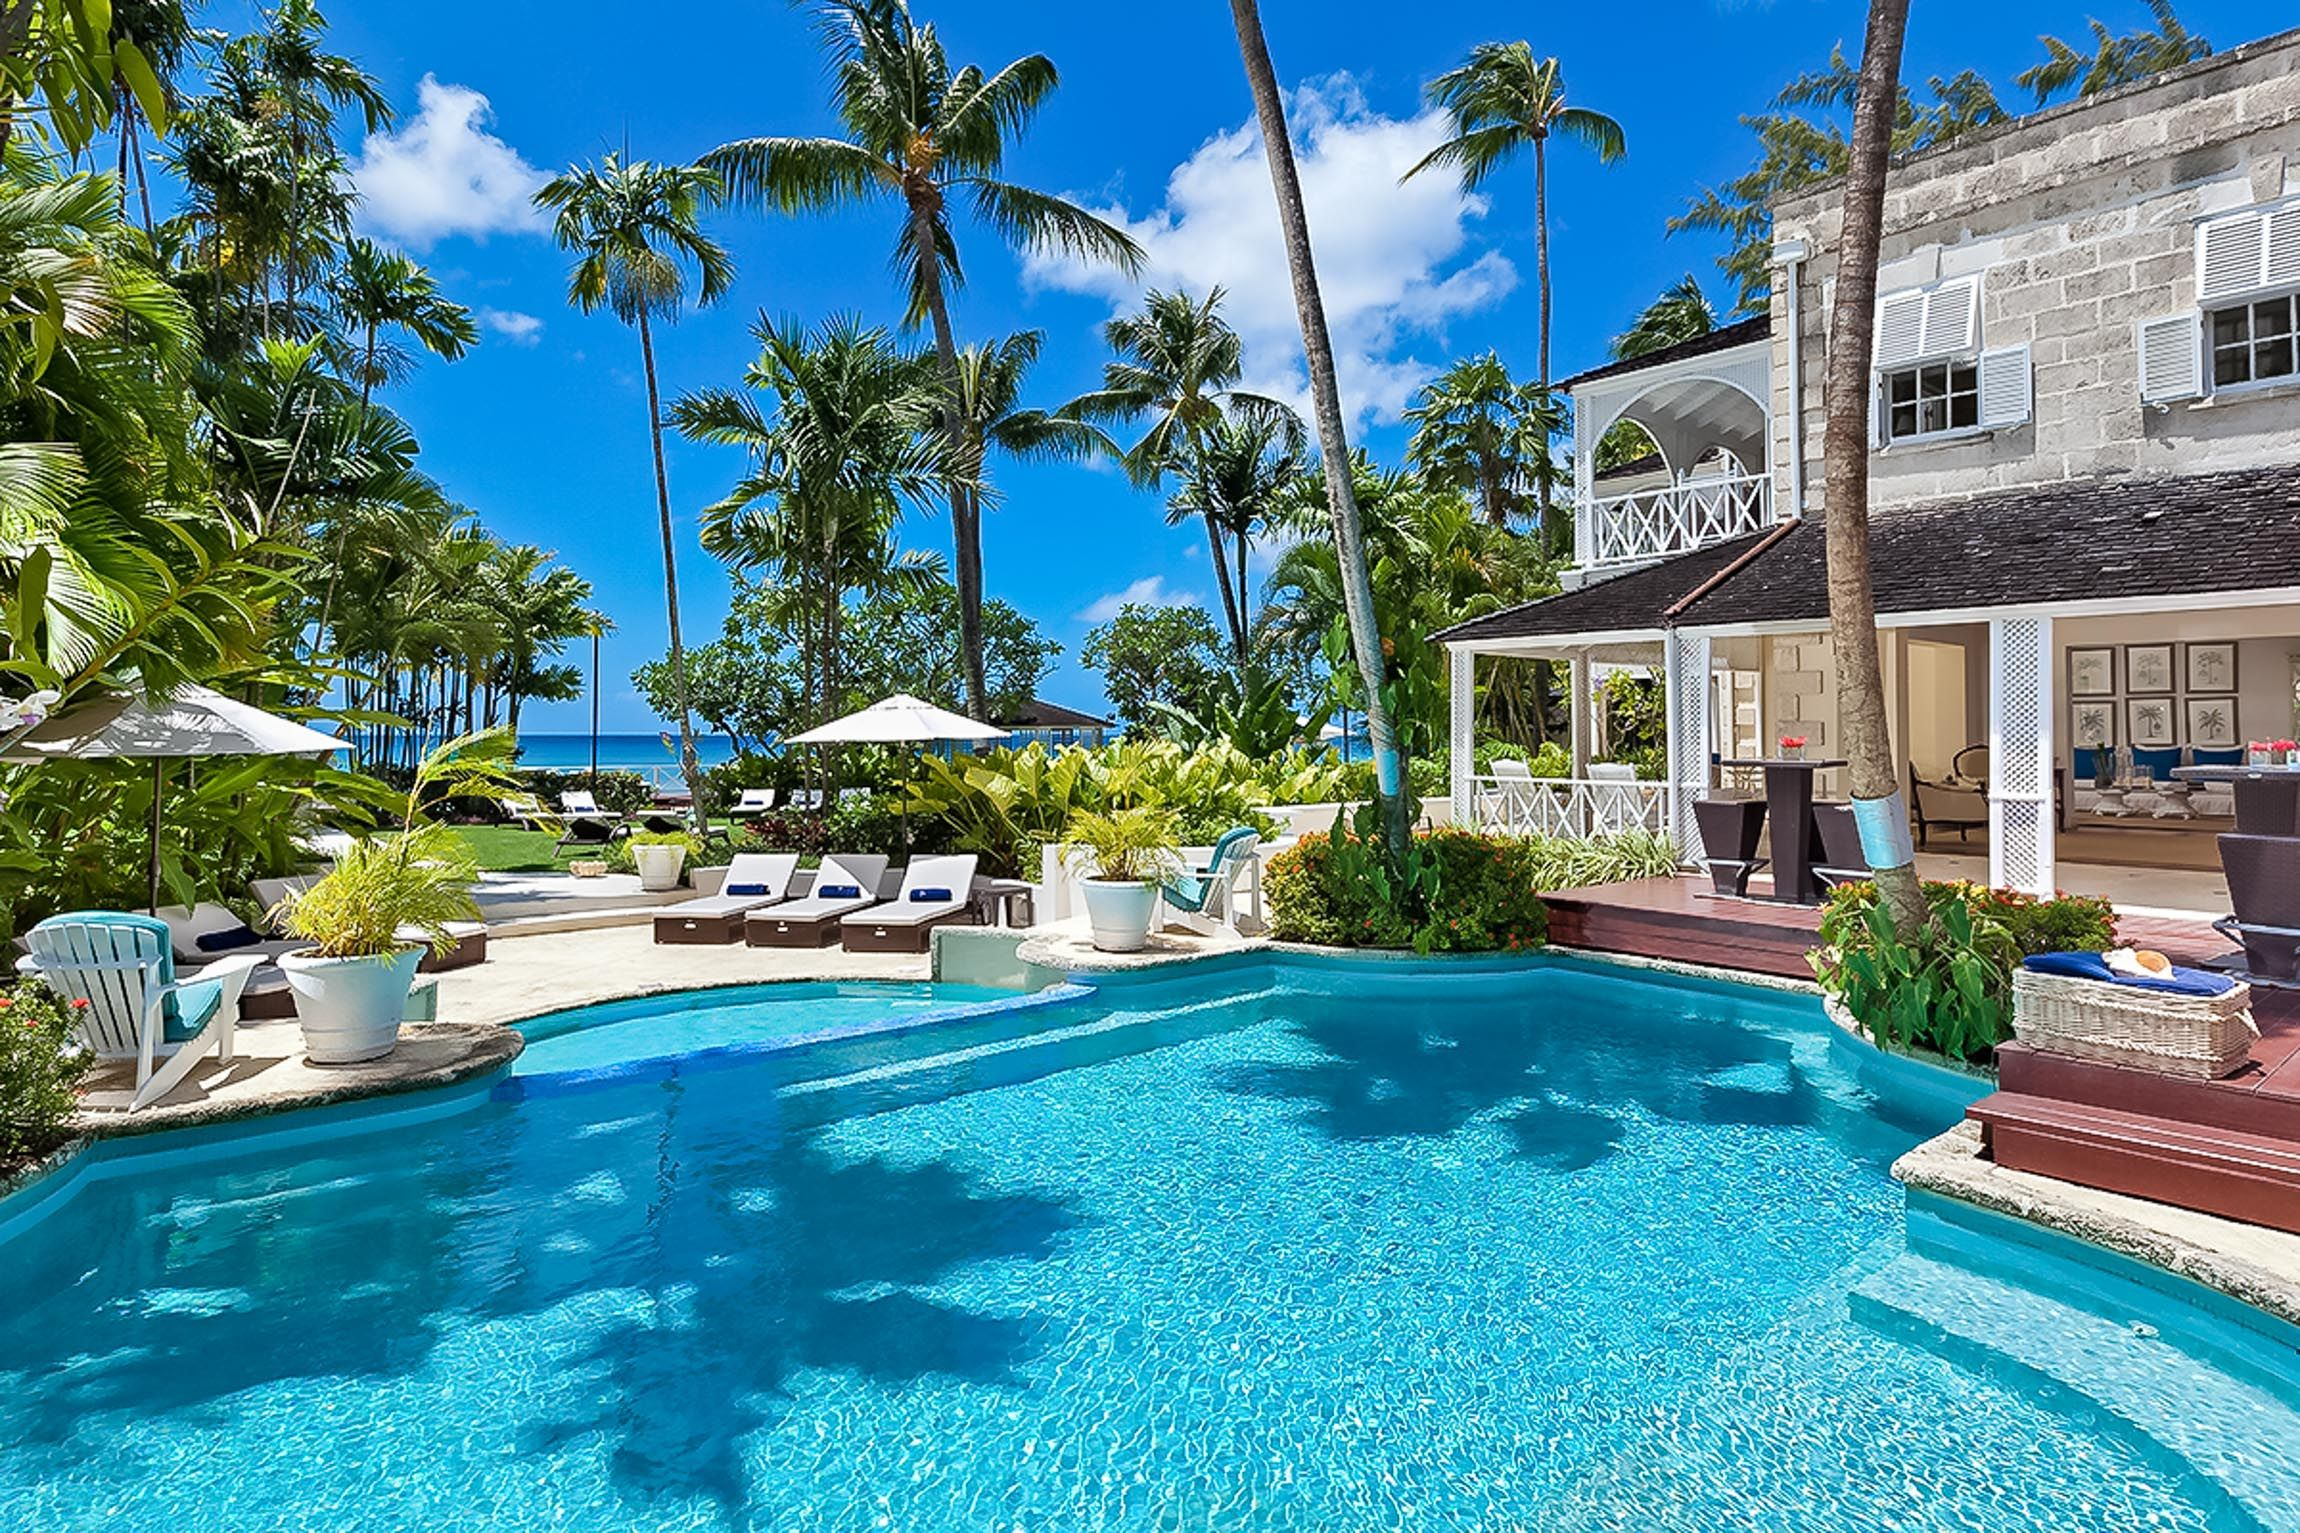 Check out this amazing Luxury Retreats beach property in Barbados